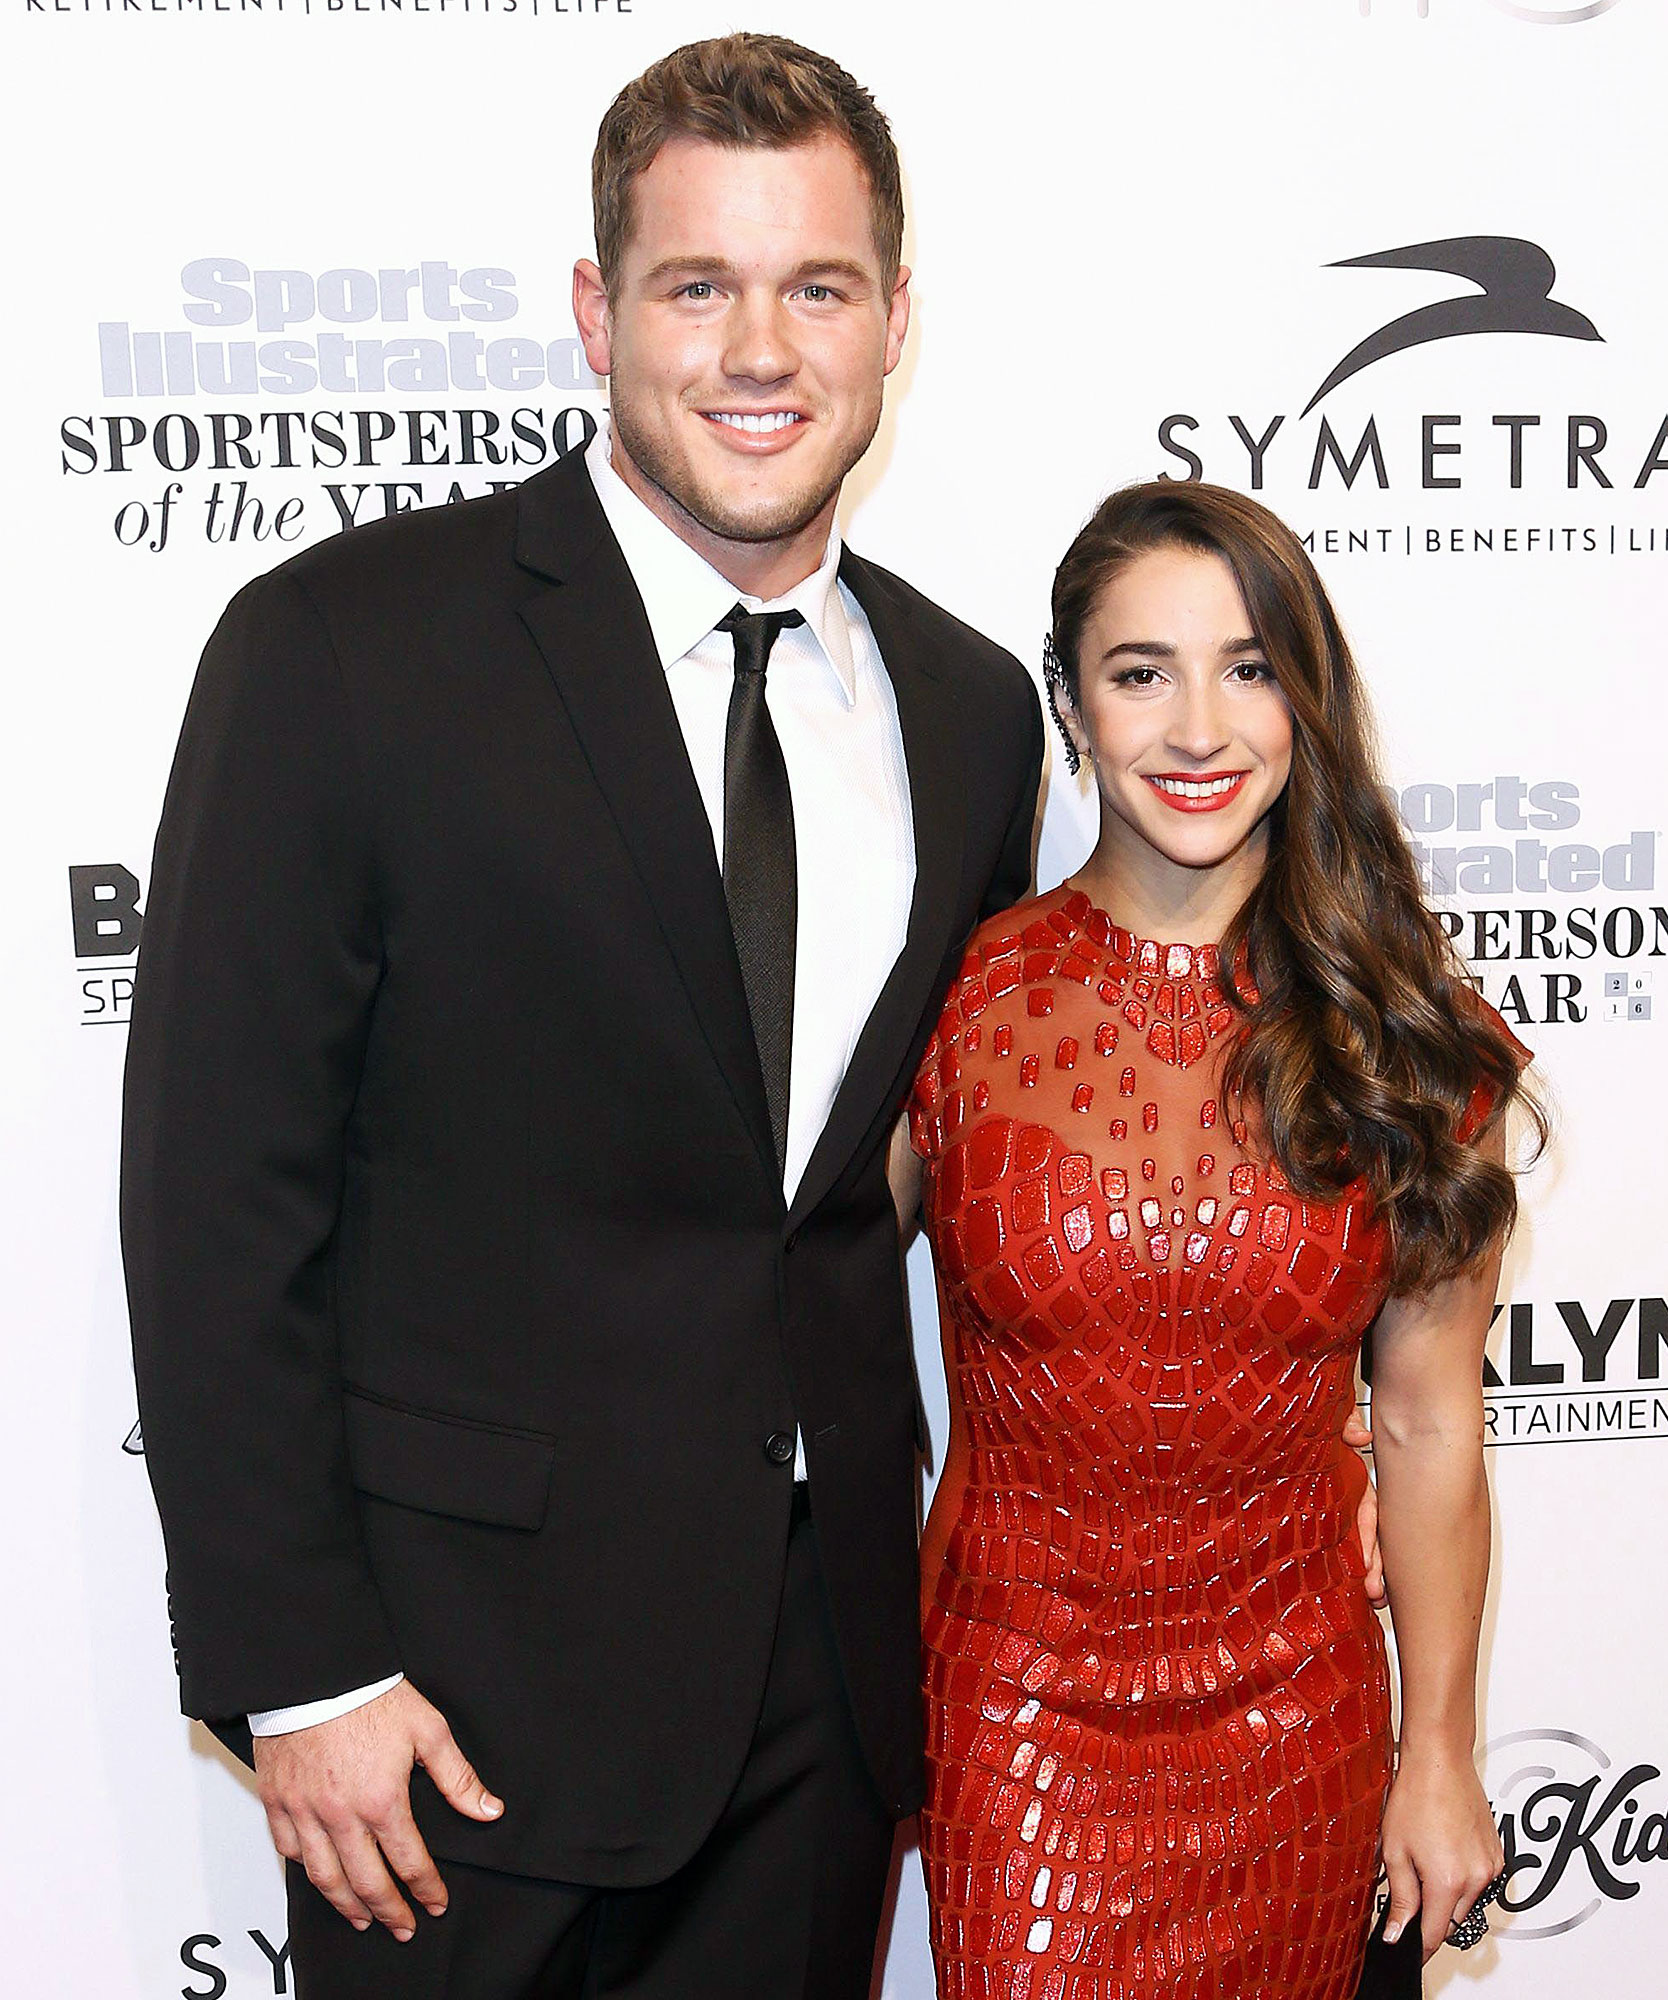 Colton Underwood Details Aly Raisman Relationship in New Book